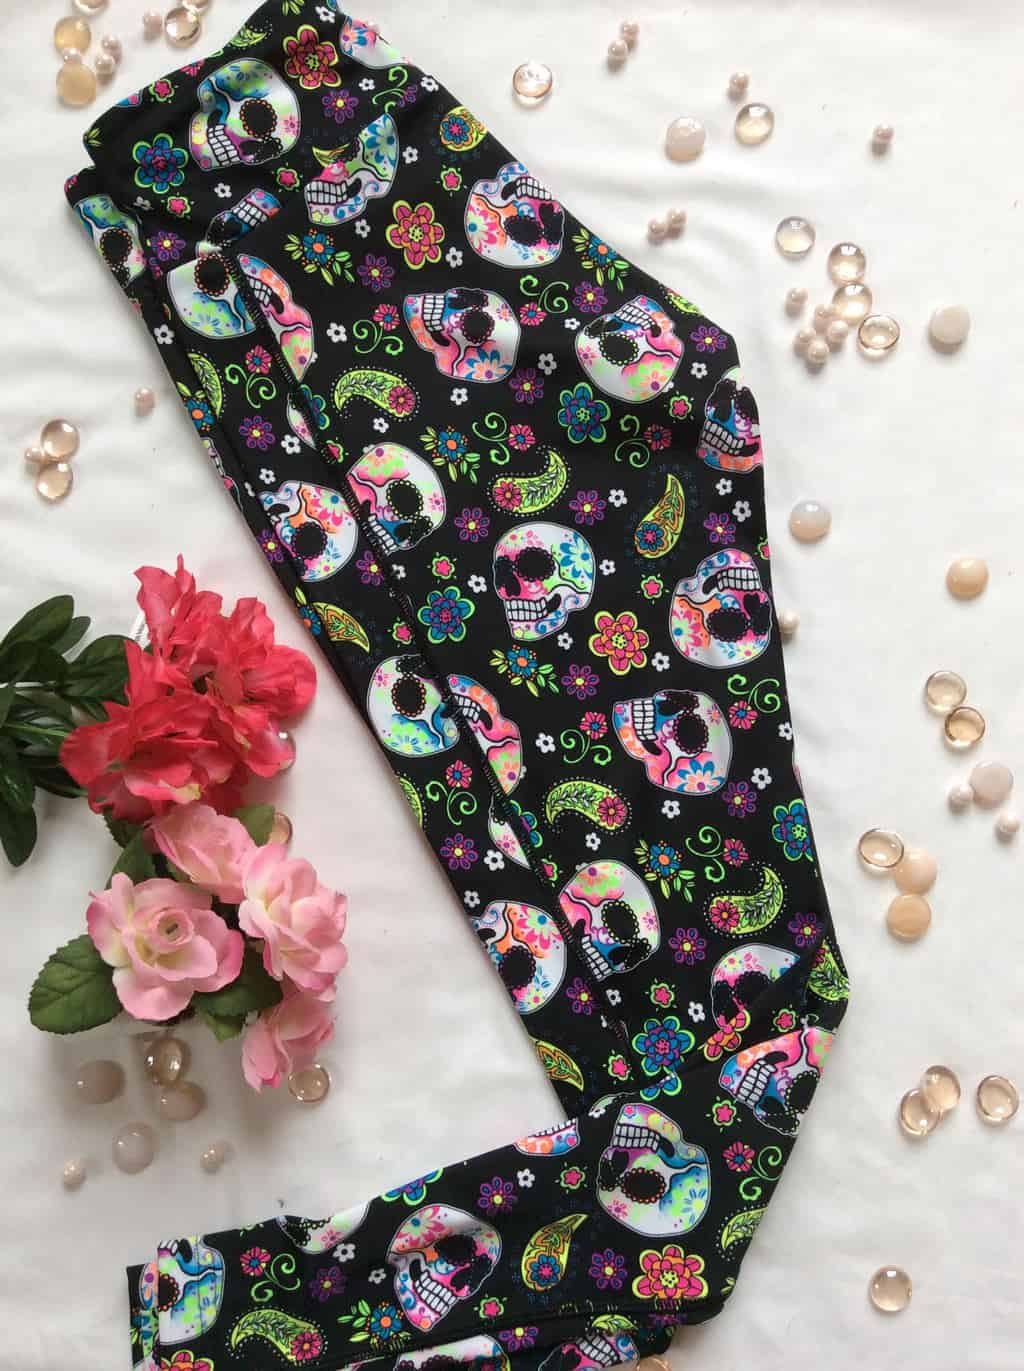 American Made Skull Tights $50 and Under from Astrosportswear